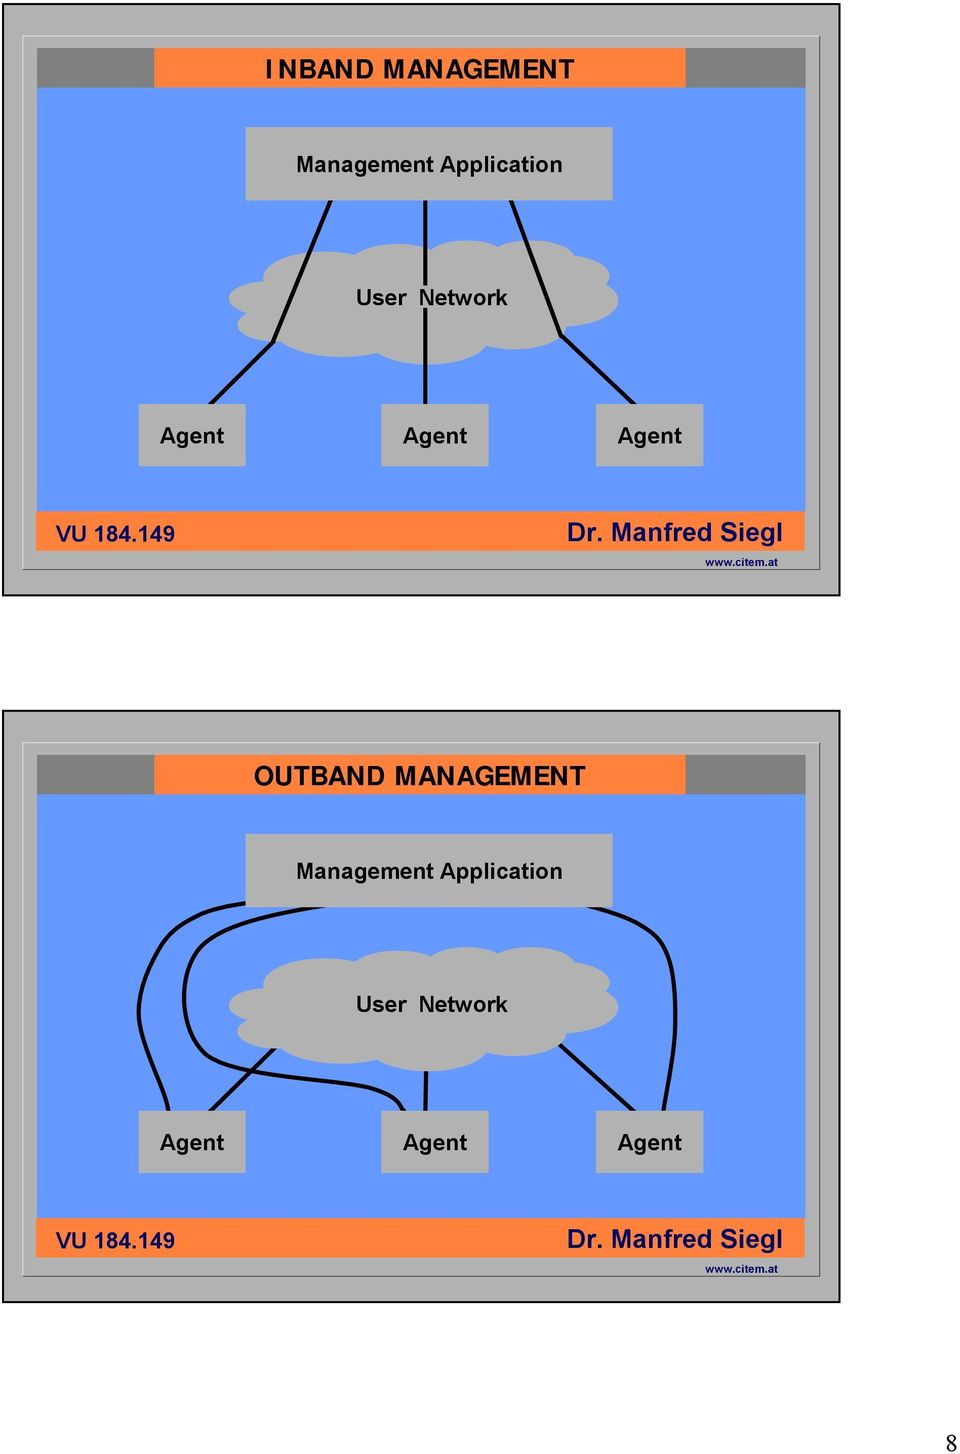 Agent OUTBAND MANAGEMENT